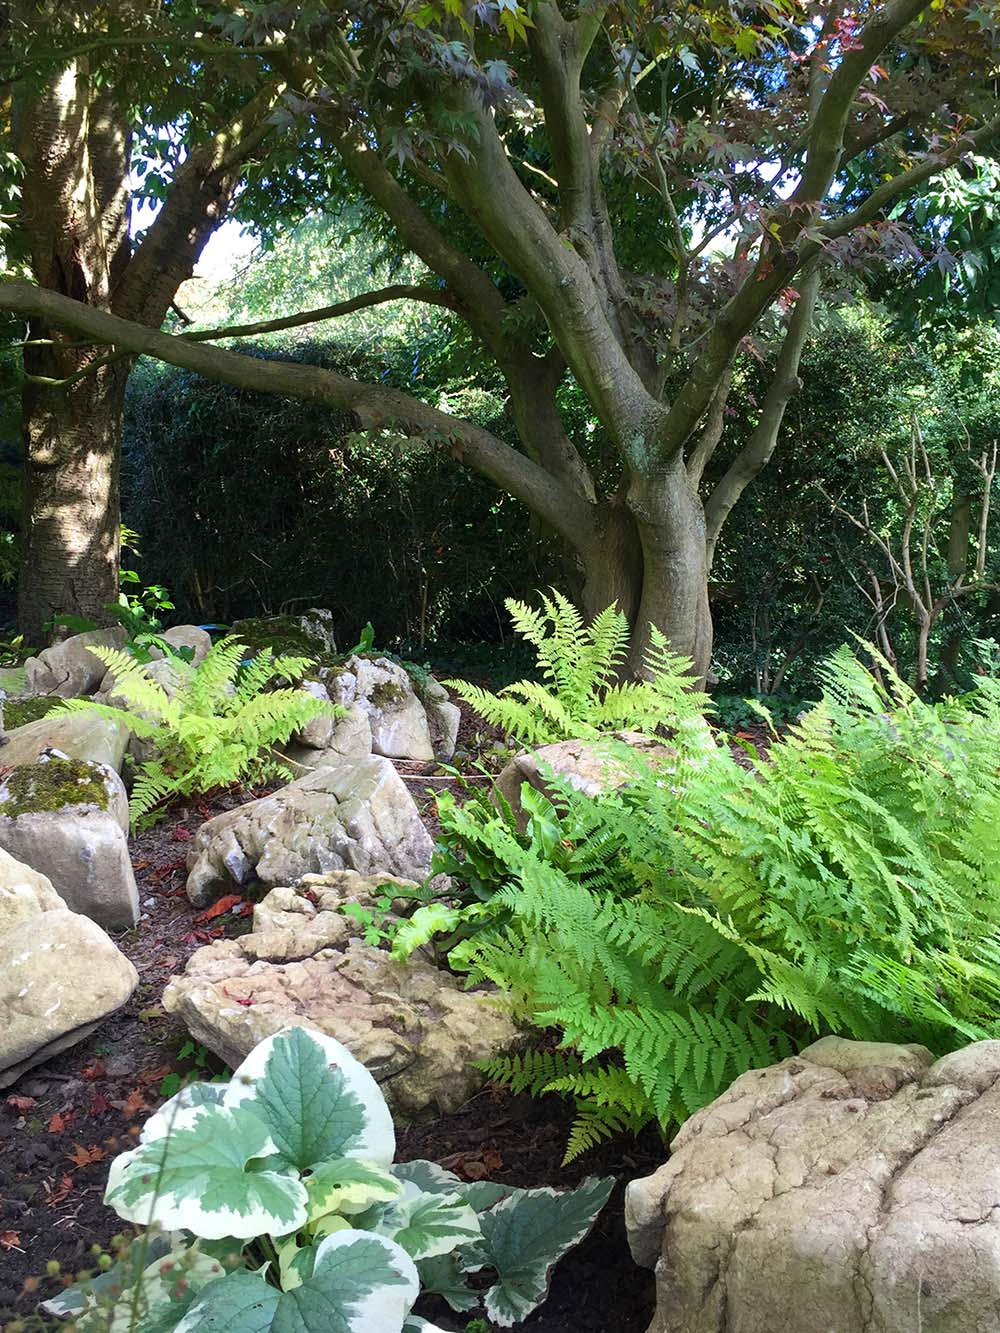 Fernery below the Japanese maple tree. Repositioned limestone clints from the rockery with new planting for dry shade: Ajuga purpurea; Brunnera Jack Frost; Lamium Beacon's Silver and Ferns in variety.